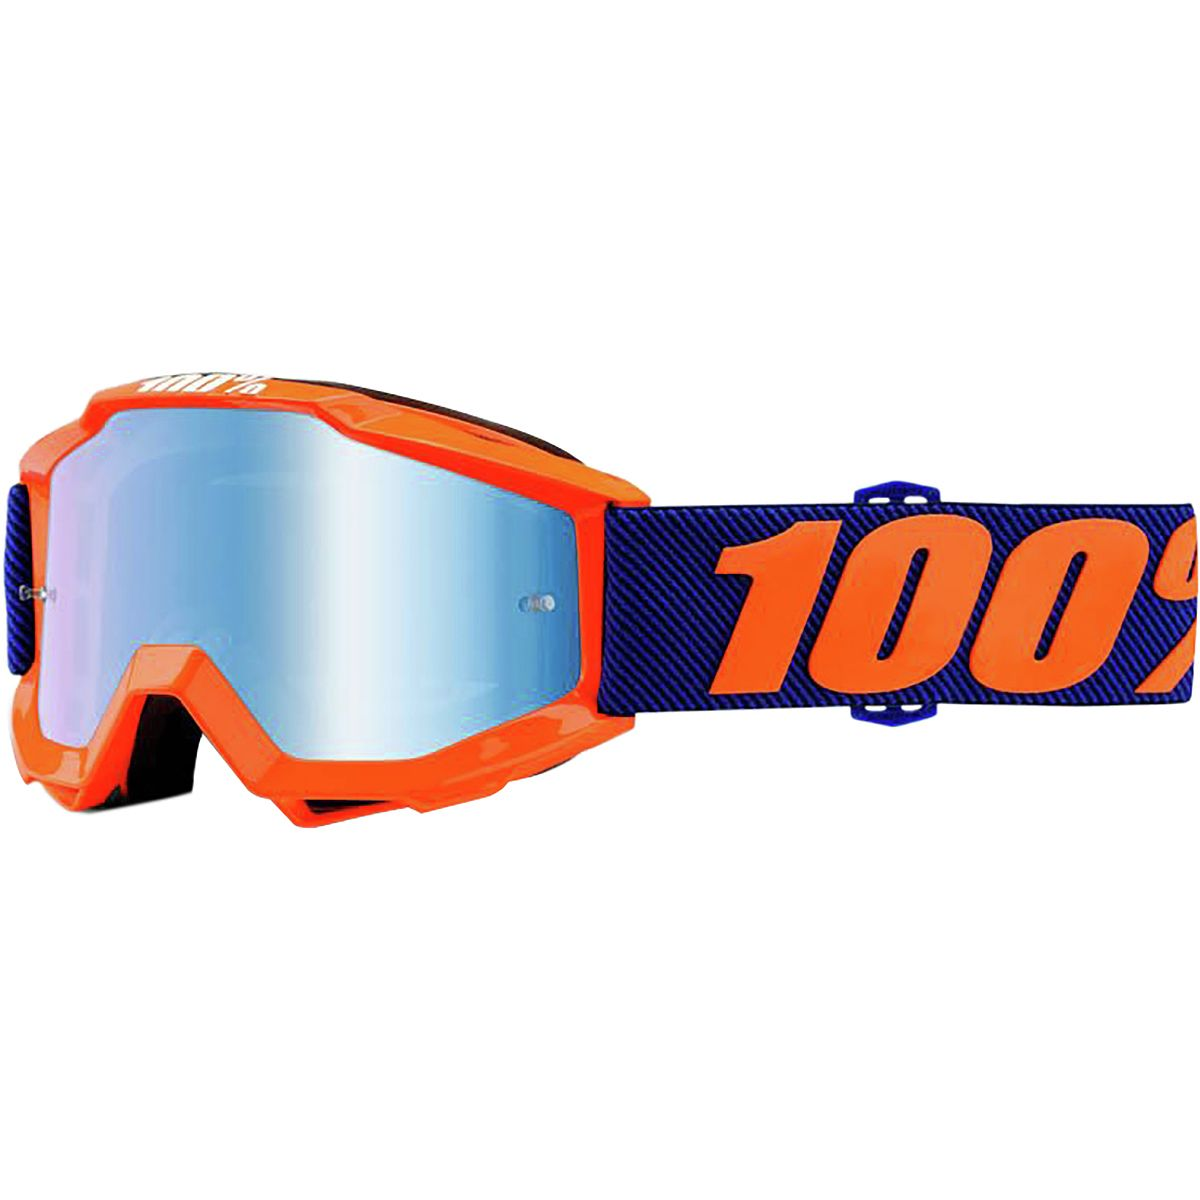 100 ACCURI Youth Goggles Origami Mirror Blue Lens One Size